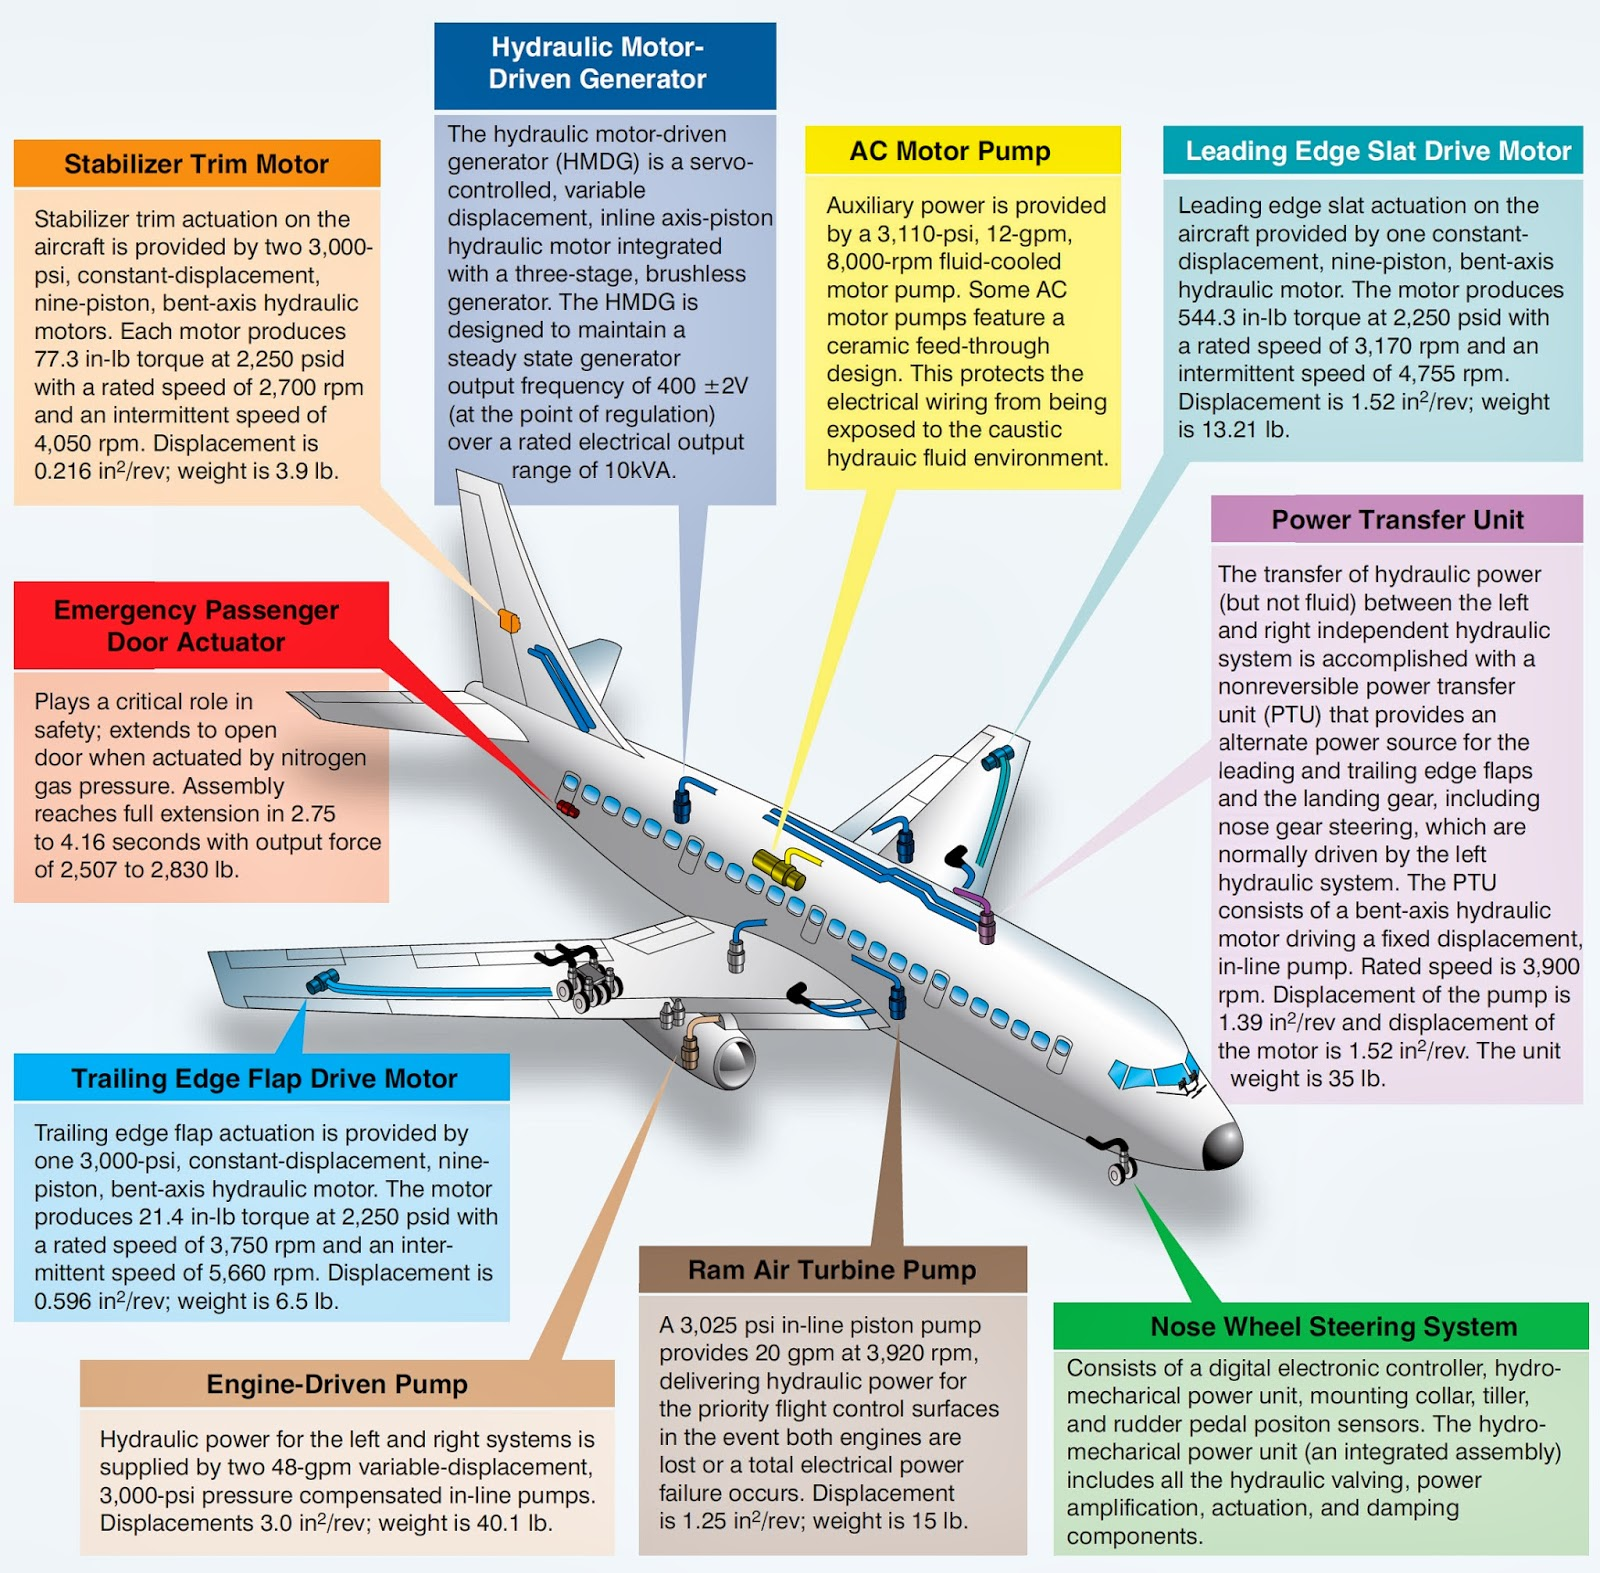 Large Aircraft Hydraulic Systems | Aircraft Systems